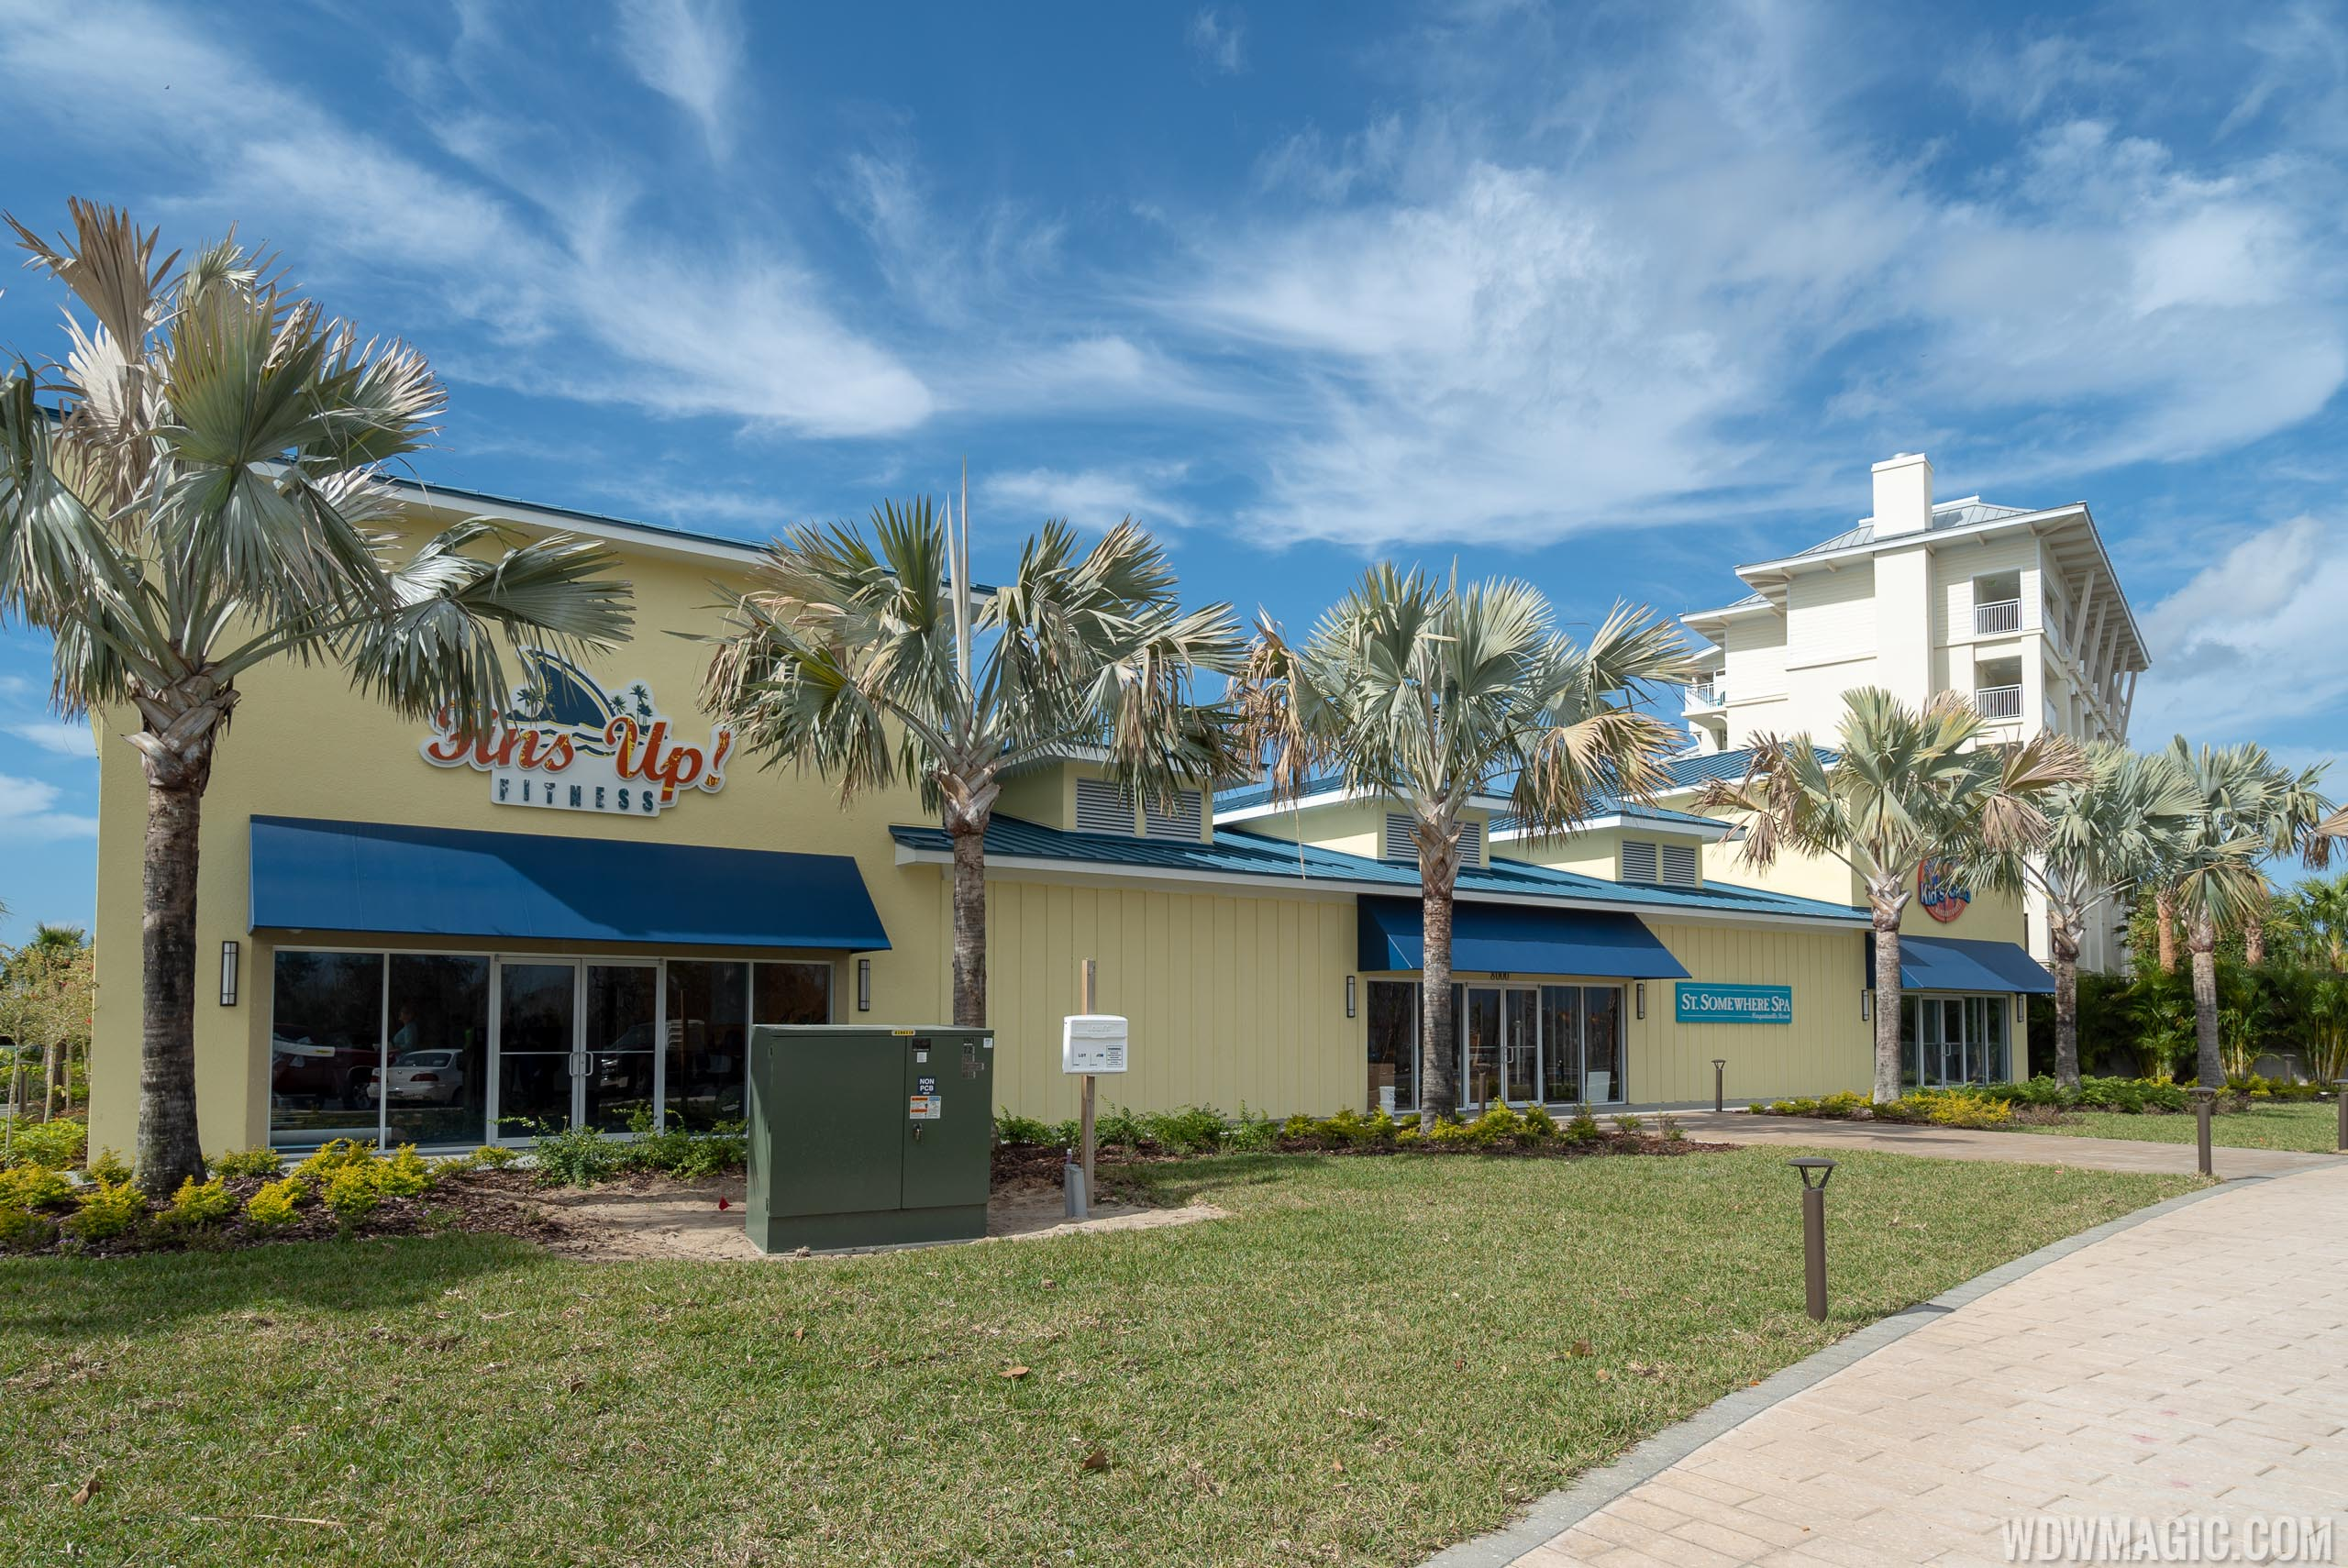 PHOTOS - Tour the brand new Margaritaville Resort Orlando